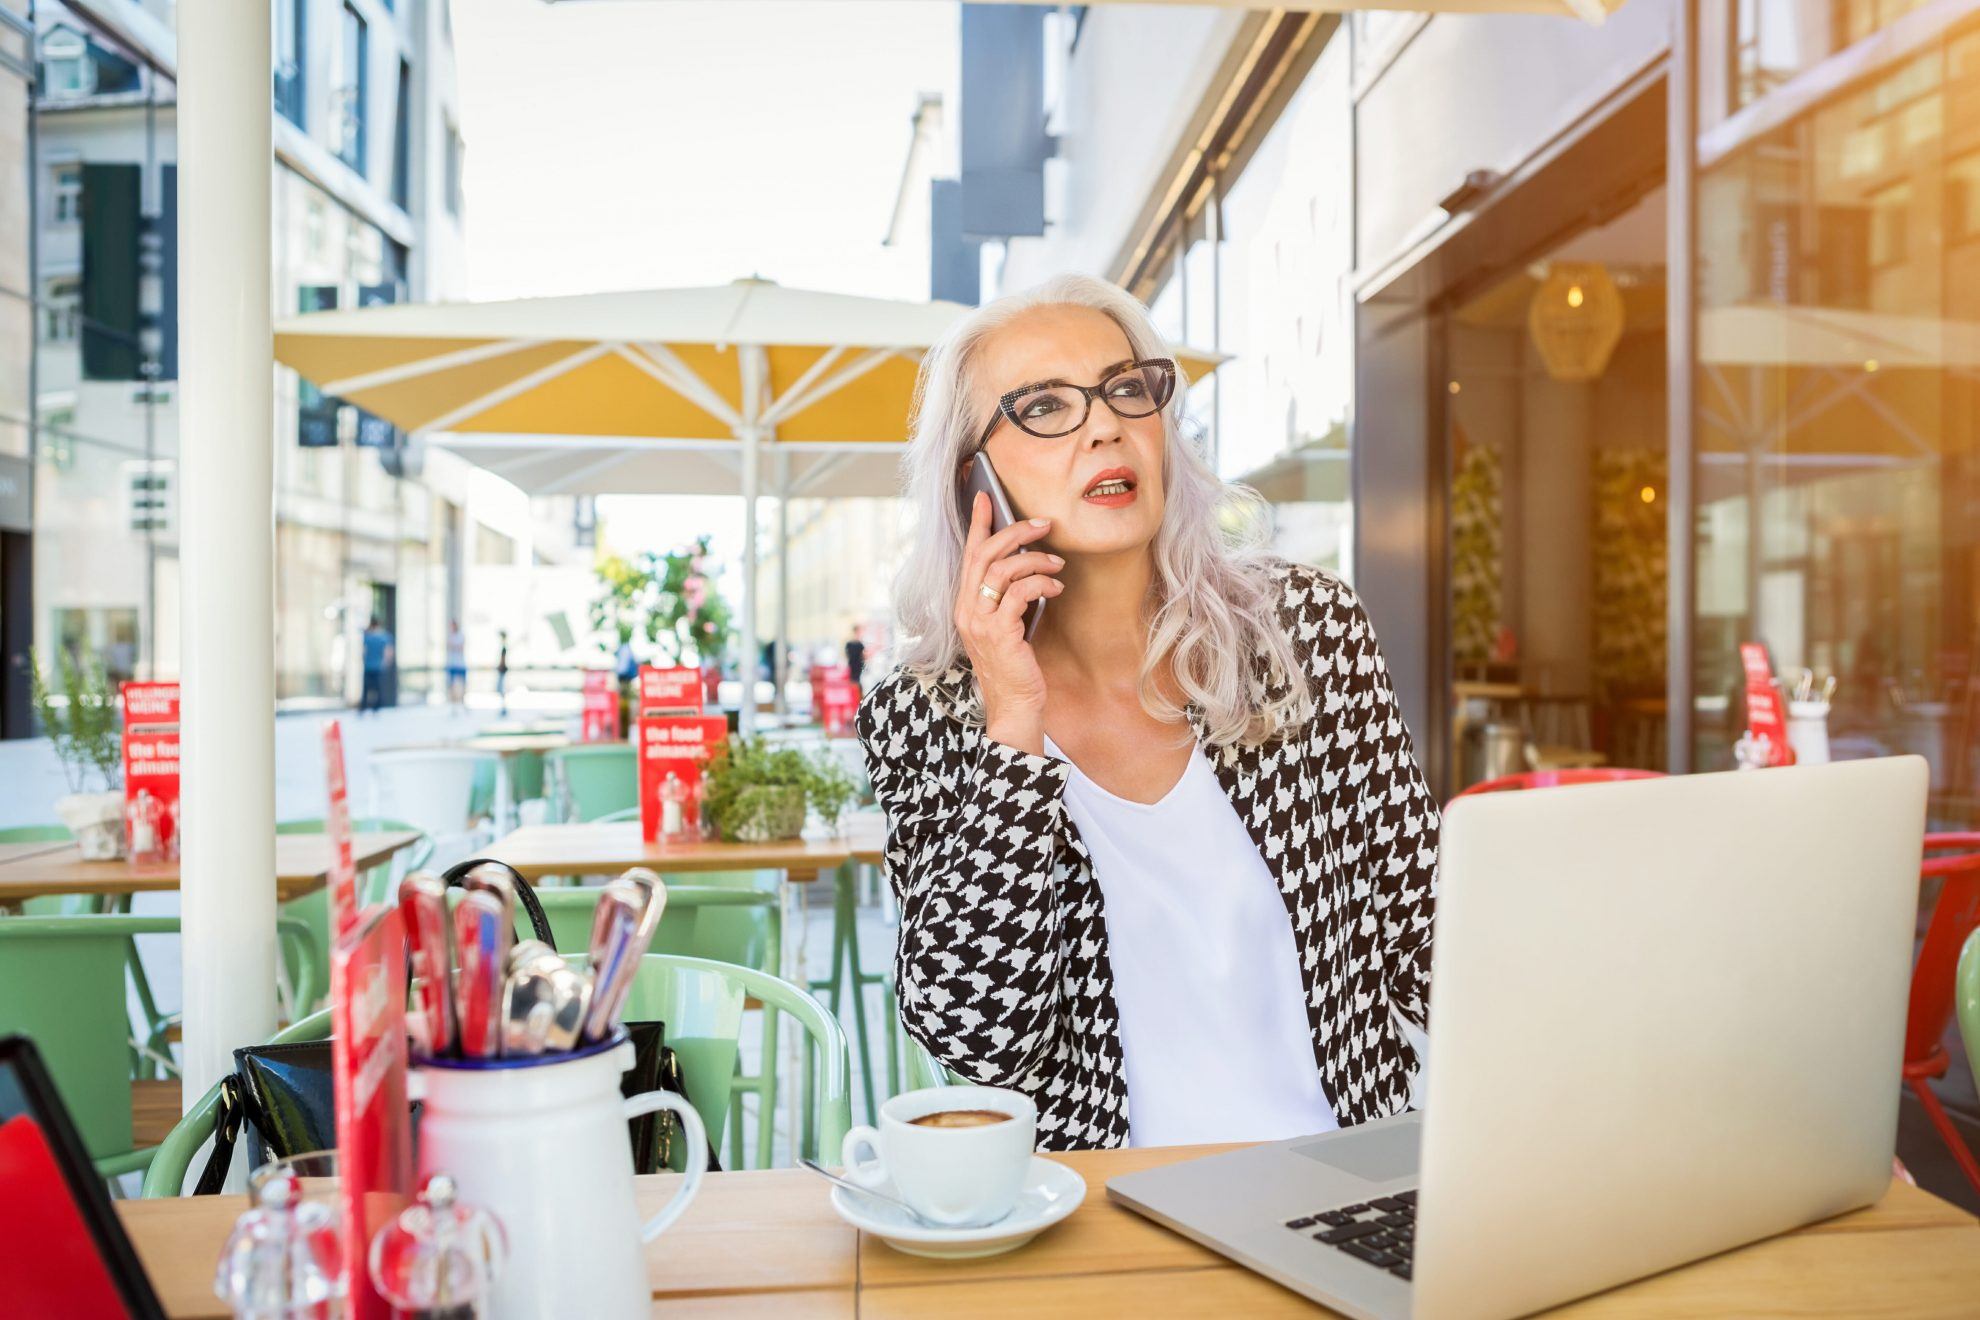 Older woman entrepreneur, on of the boomers lifestyle trends